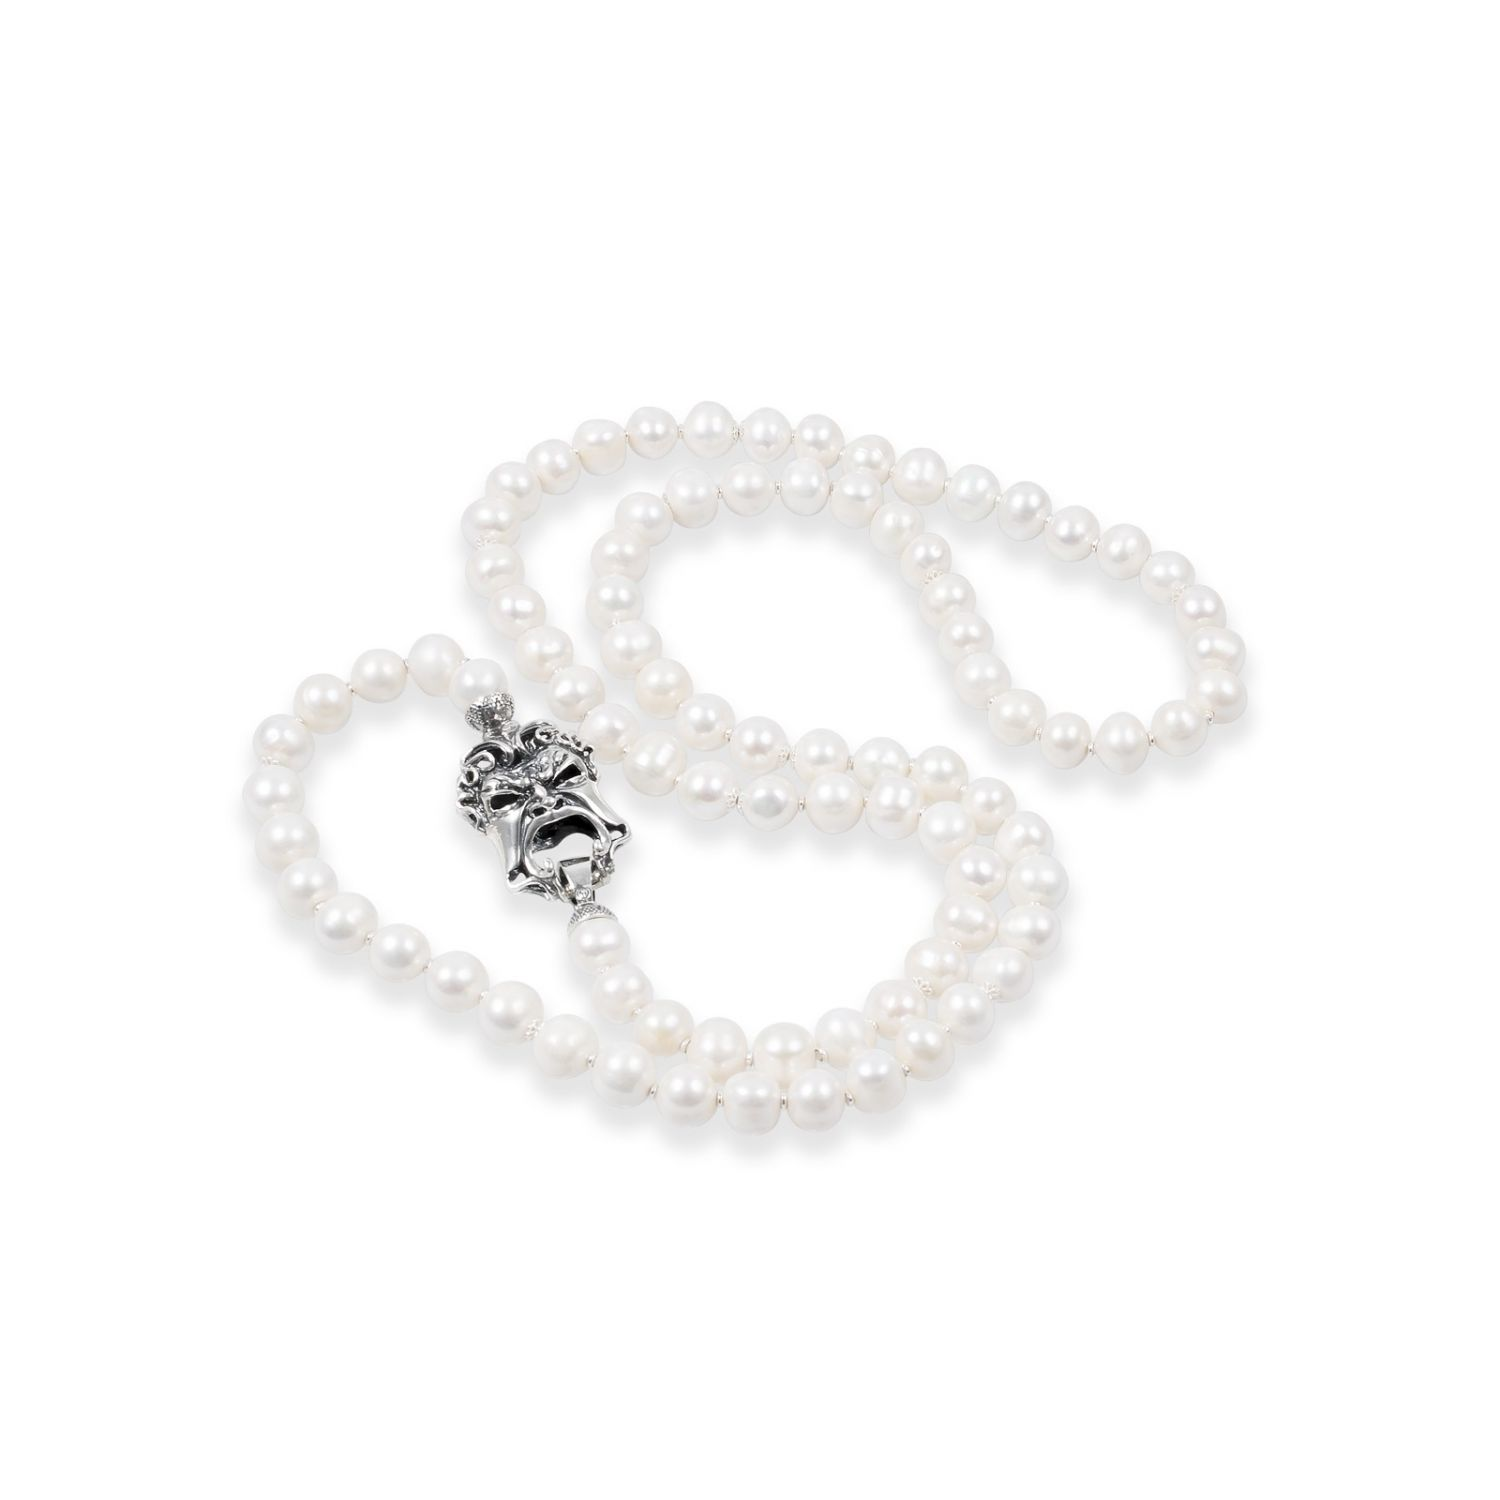 Pearls Necklace with Mask (27575)